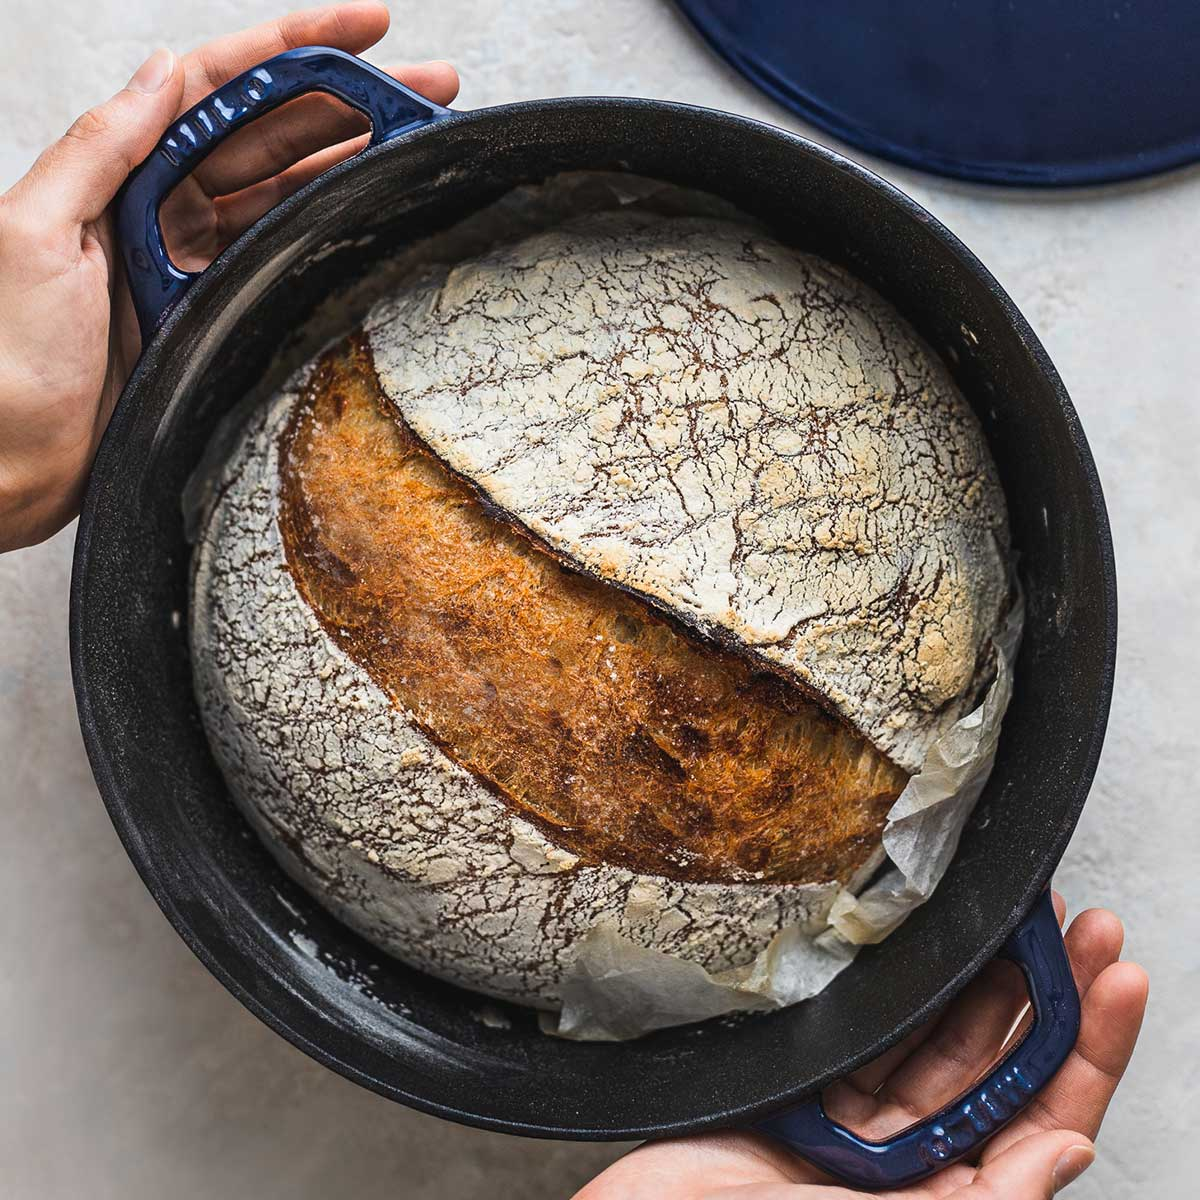 How to proof bread dough